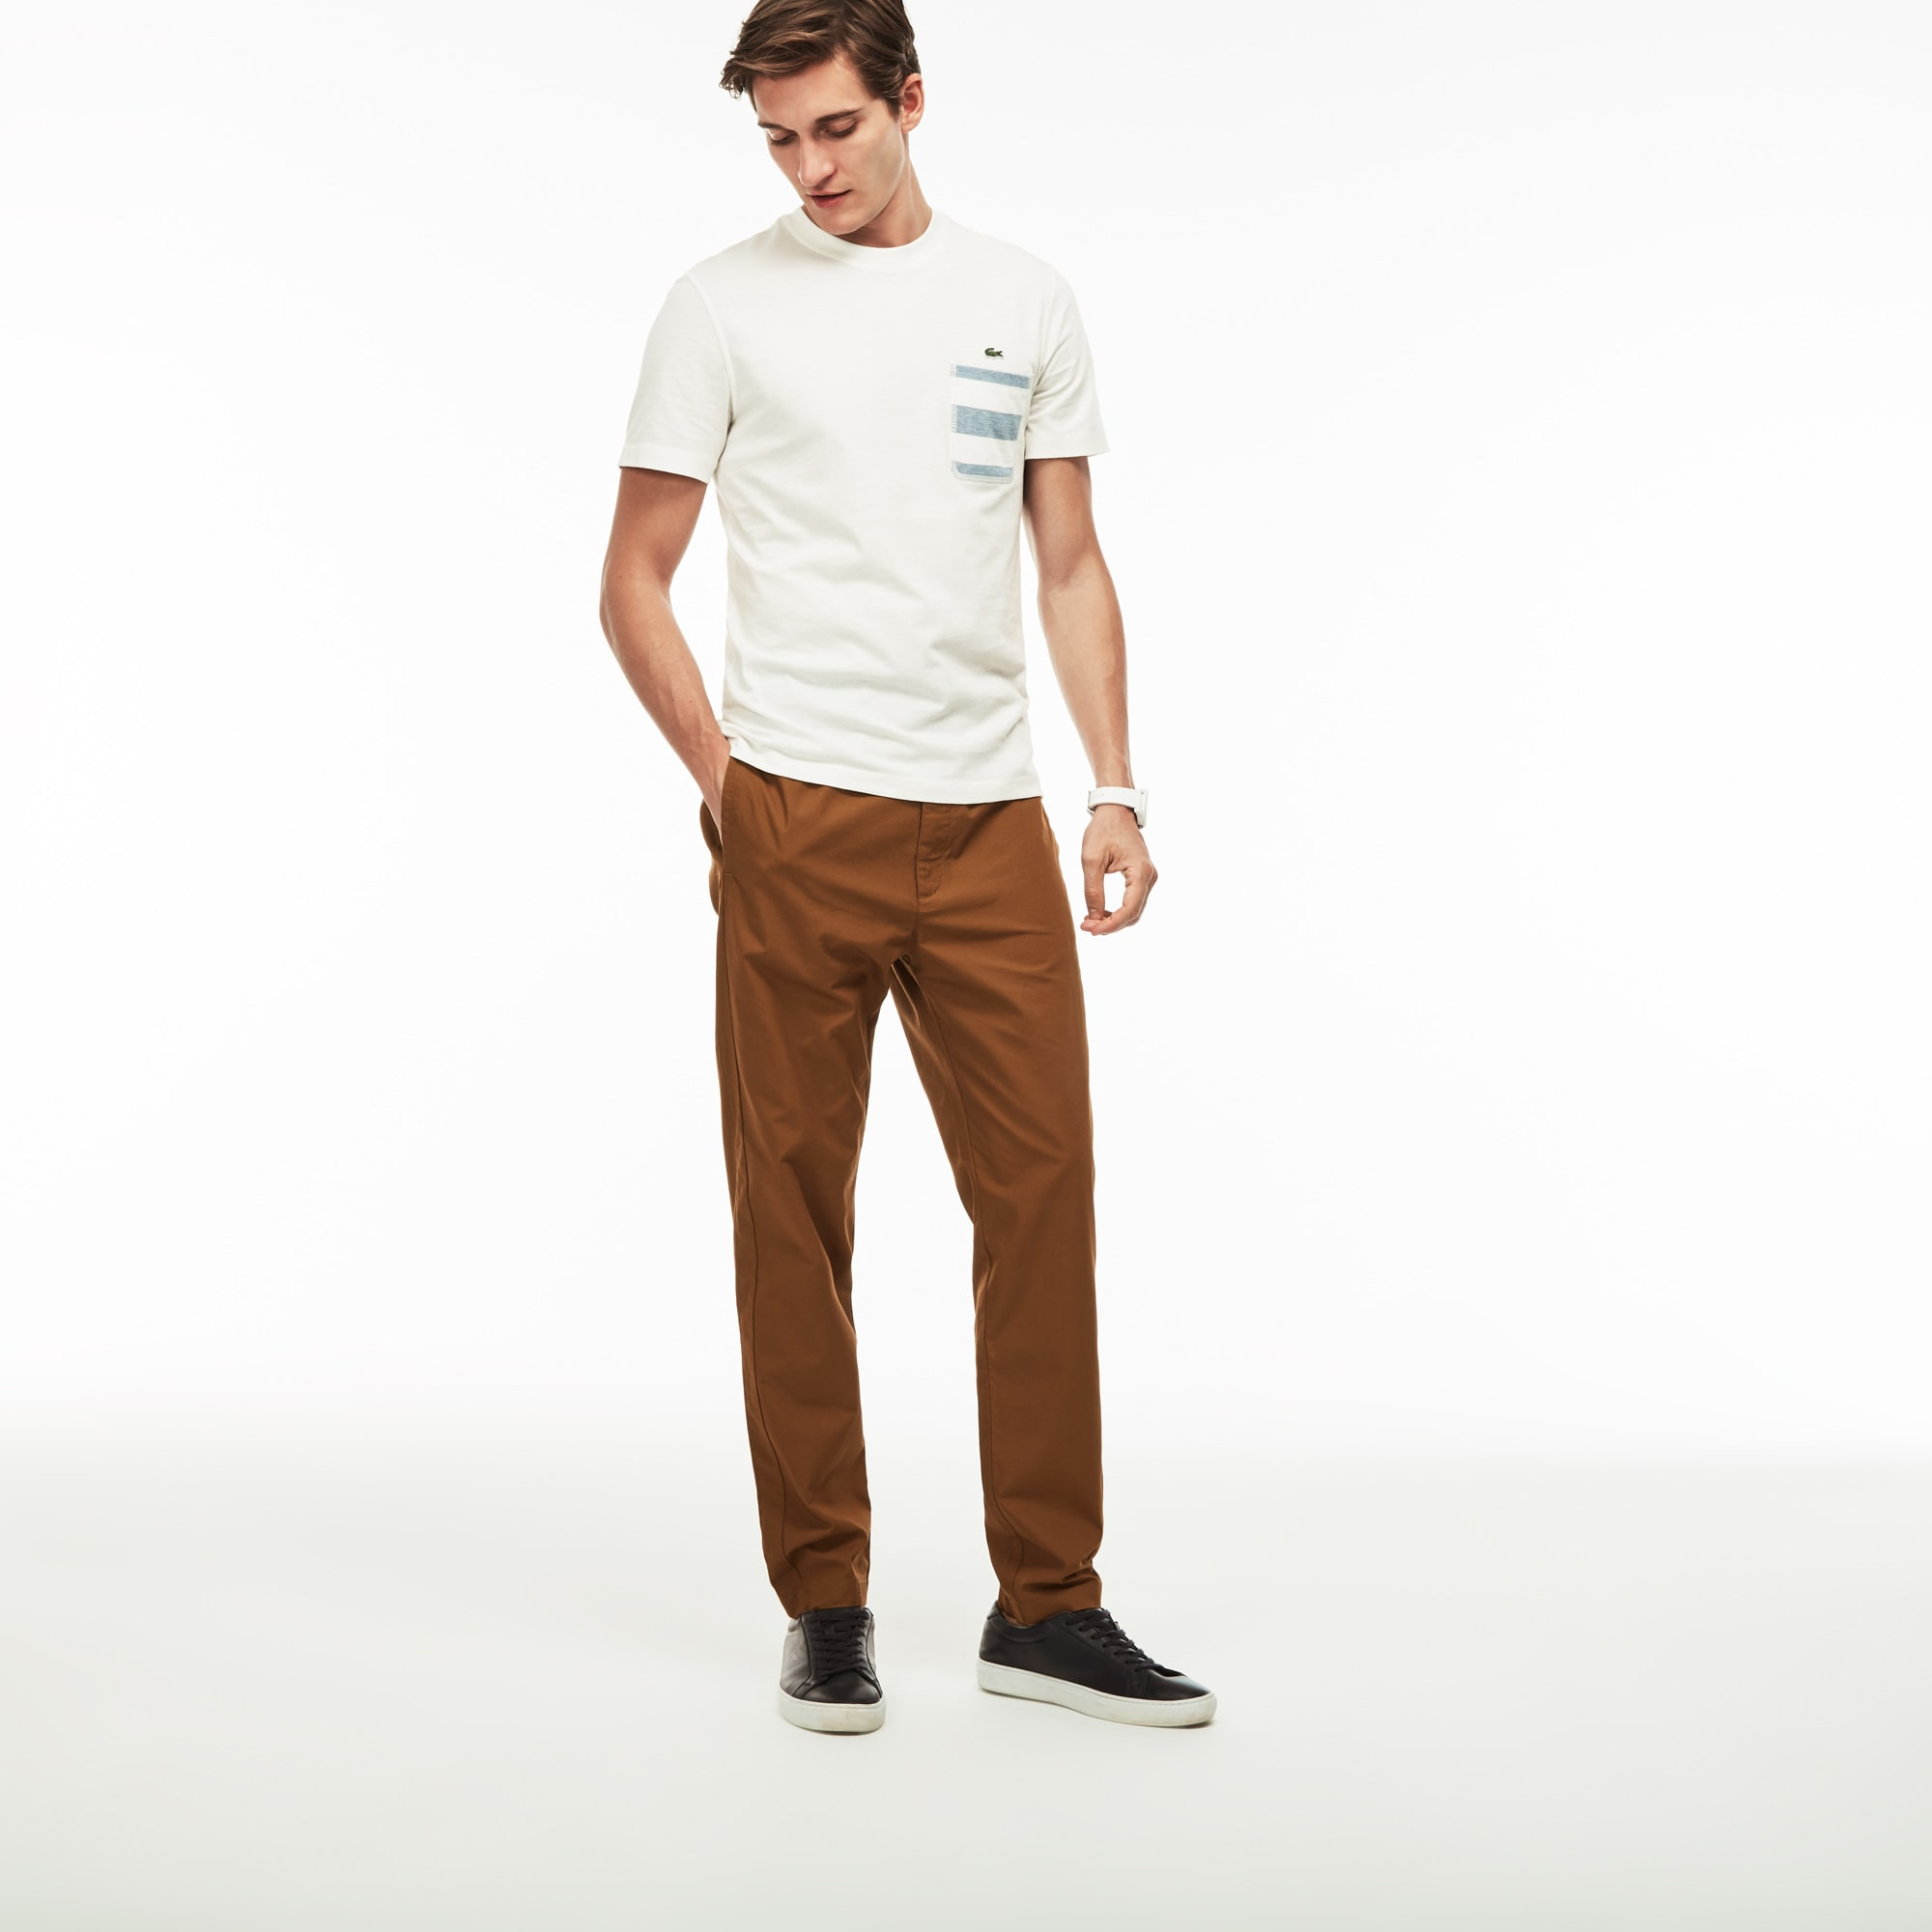 Men's Technical Cotton Pants